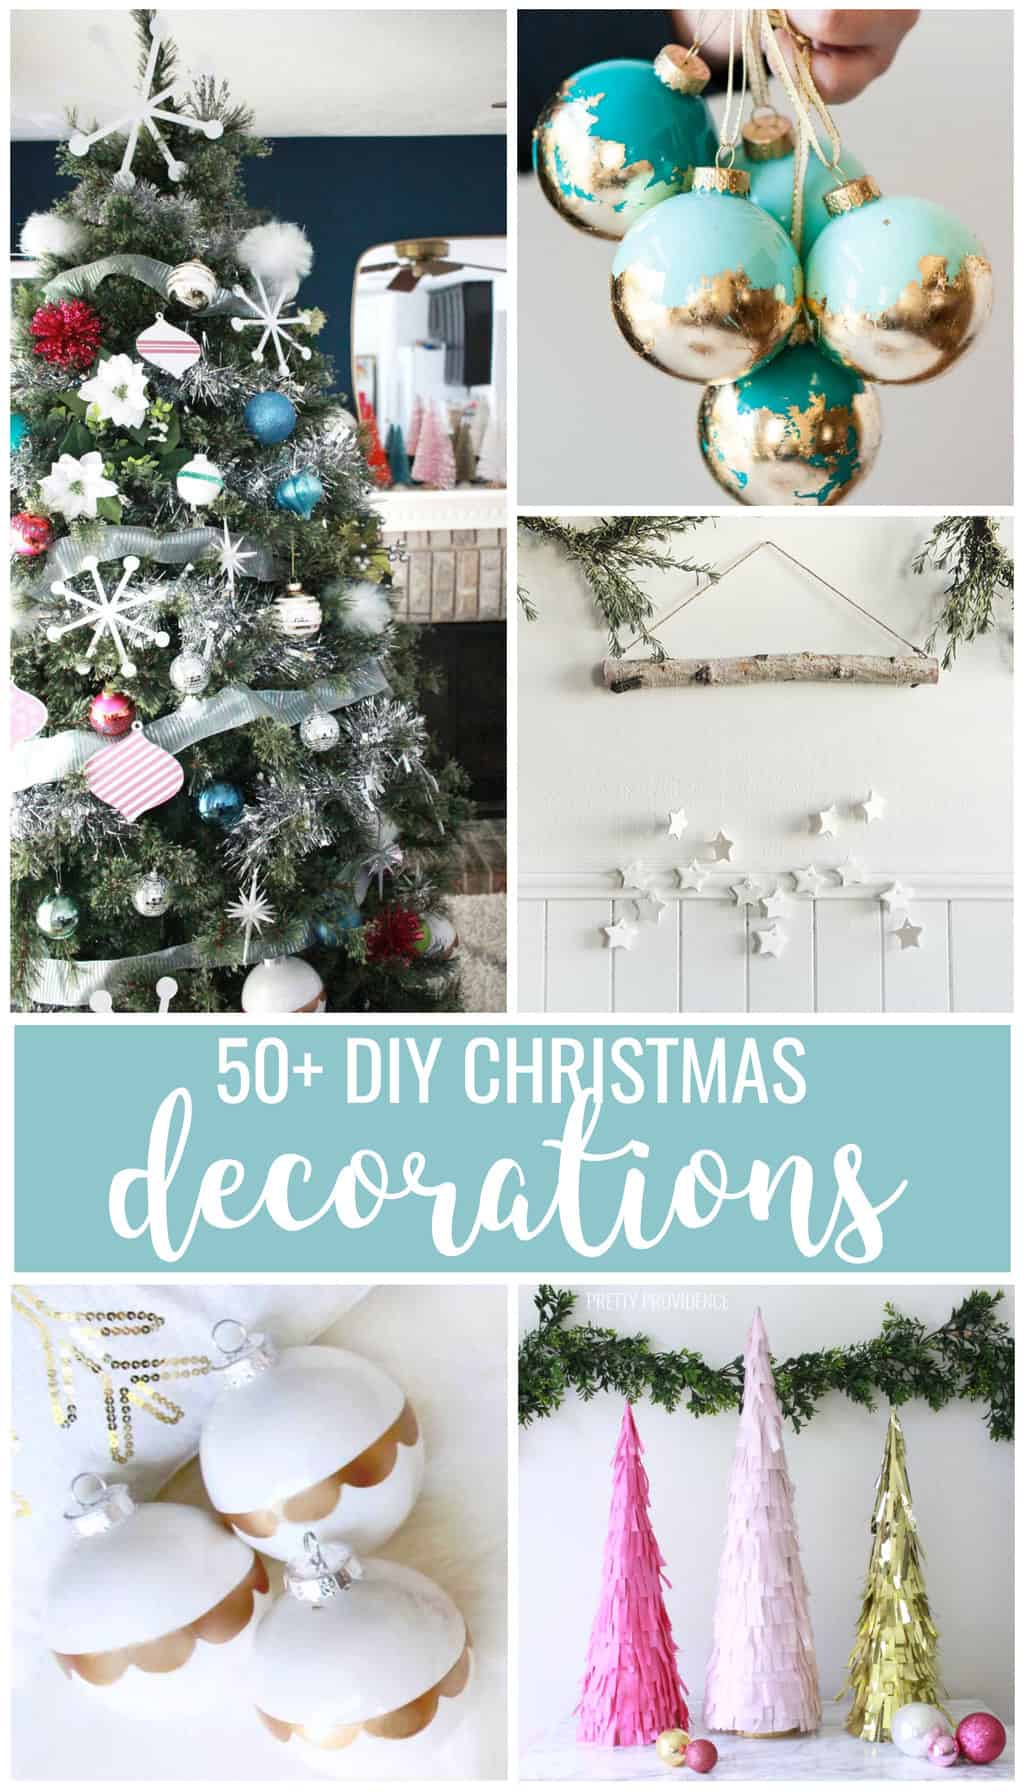 DIY Christmas decorations! So many good ideas for easy Christmas crafts from DIY Advent Calendars to homemade ornaments! #christmas #christmasideas #christmasornament #homemadeornaments #homemadechristmas #diychristmas #holidays #christmasdecor #christmastree